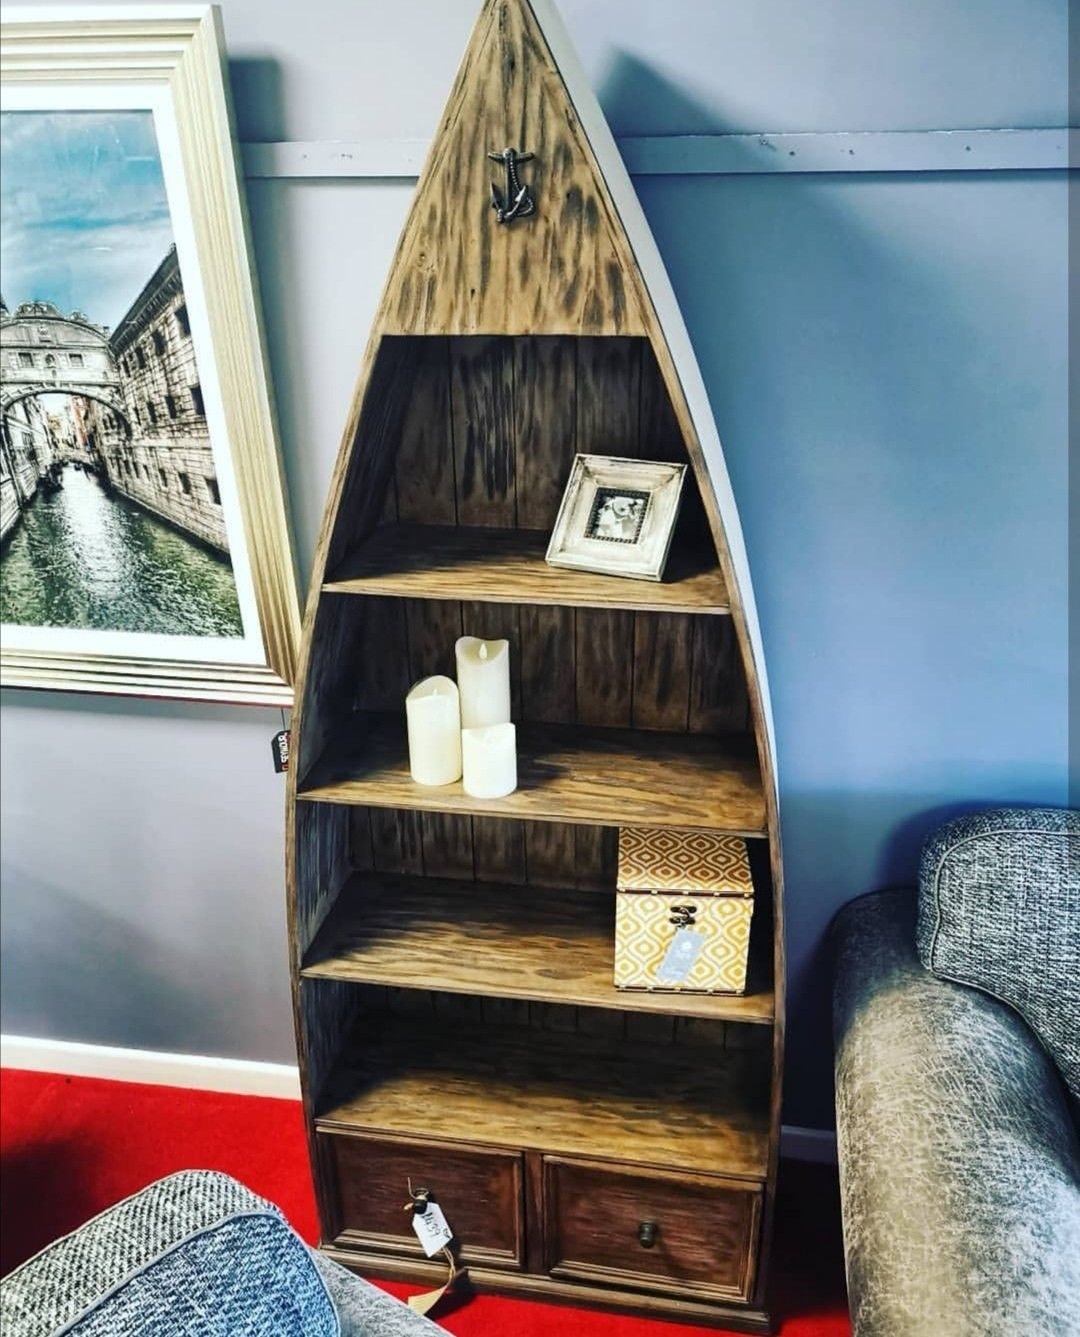 This unique bookcase would make an ideal addition to any